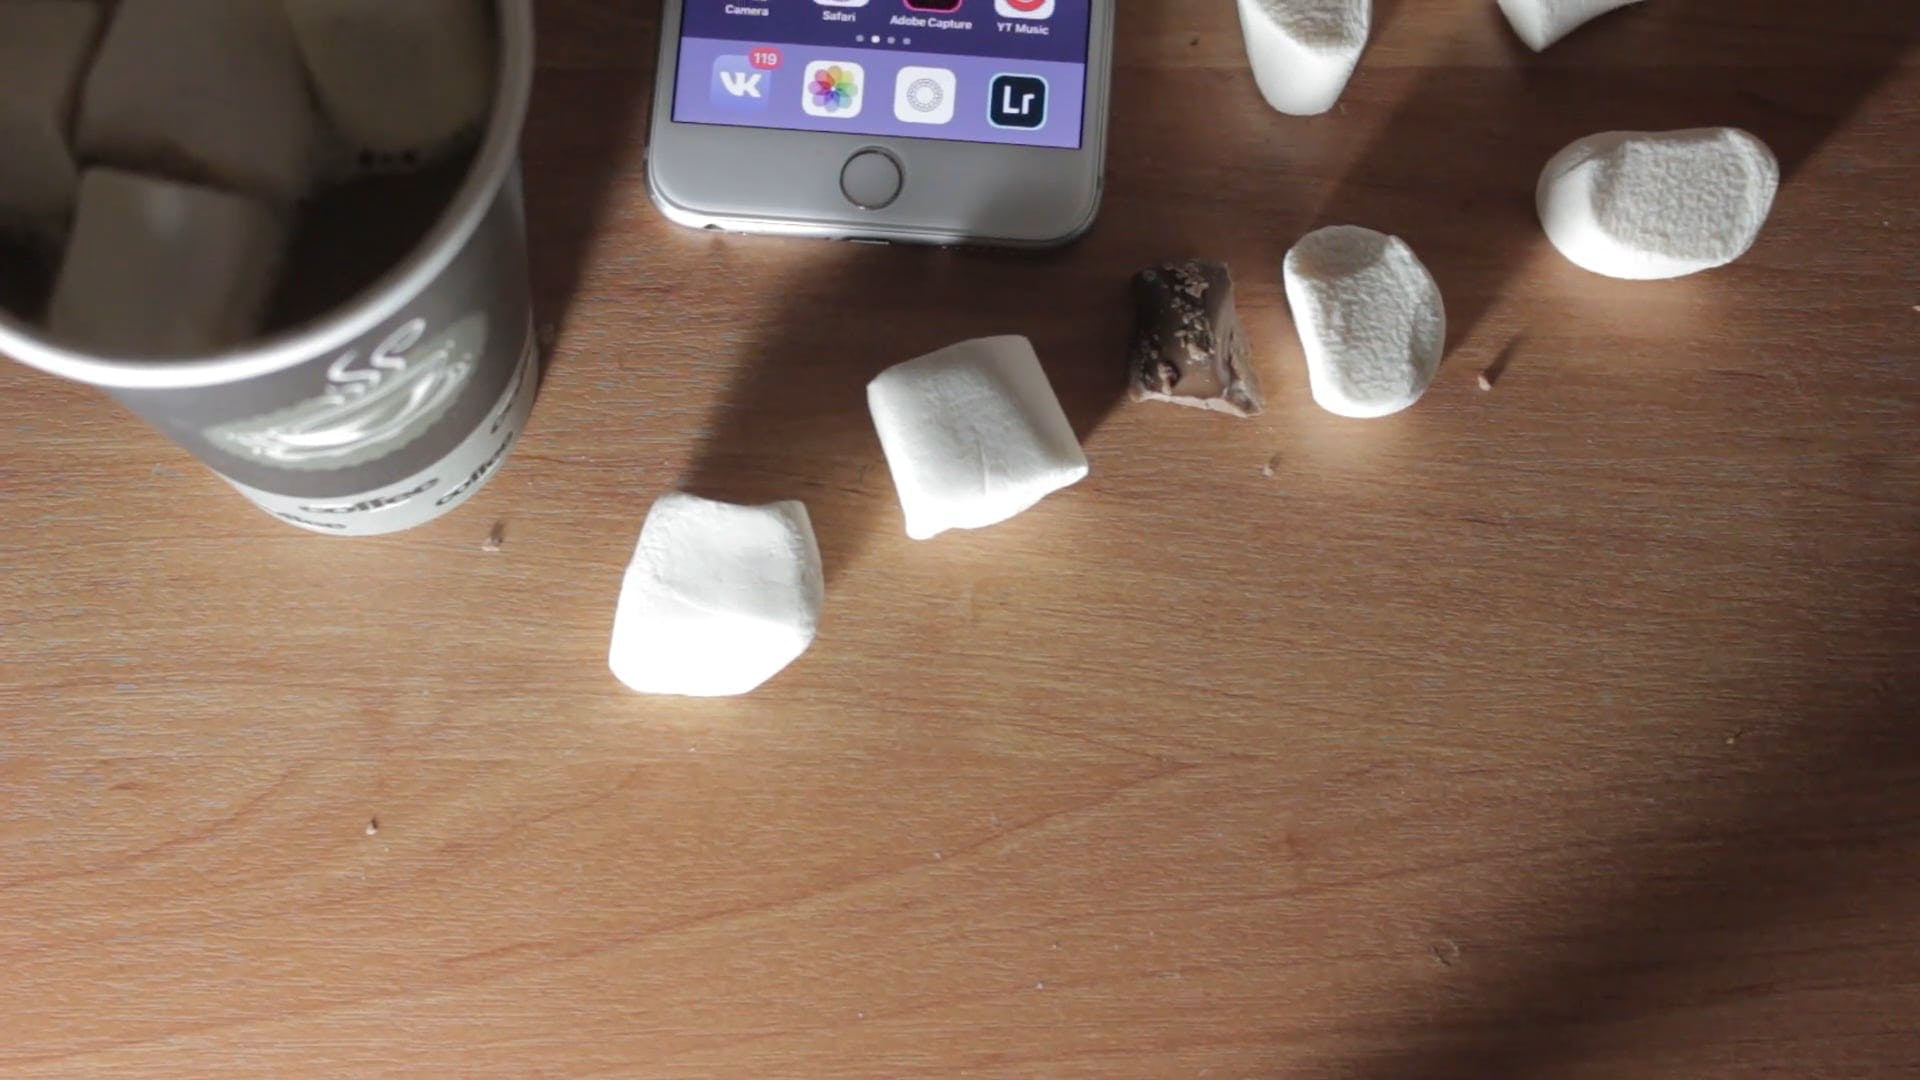 Smartphone On Table With Chocolates and Marshmallows